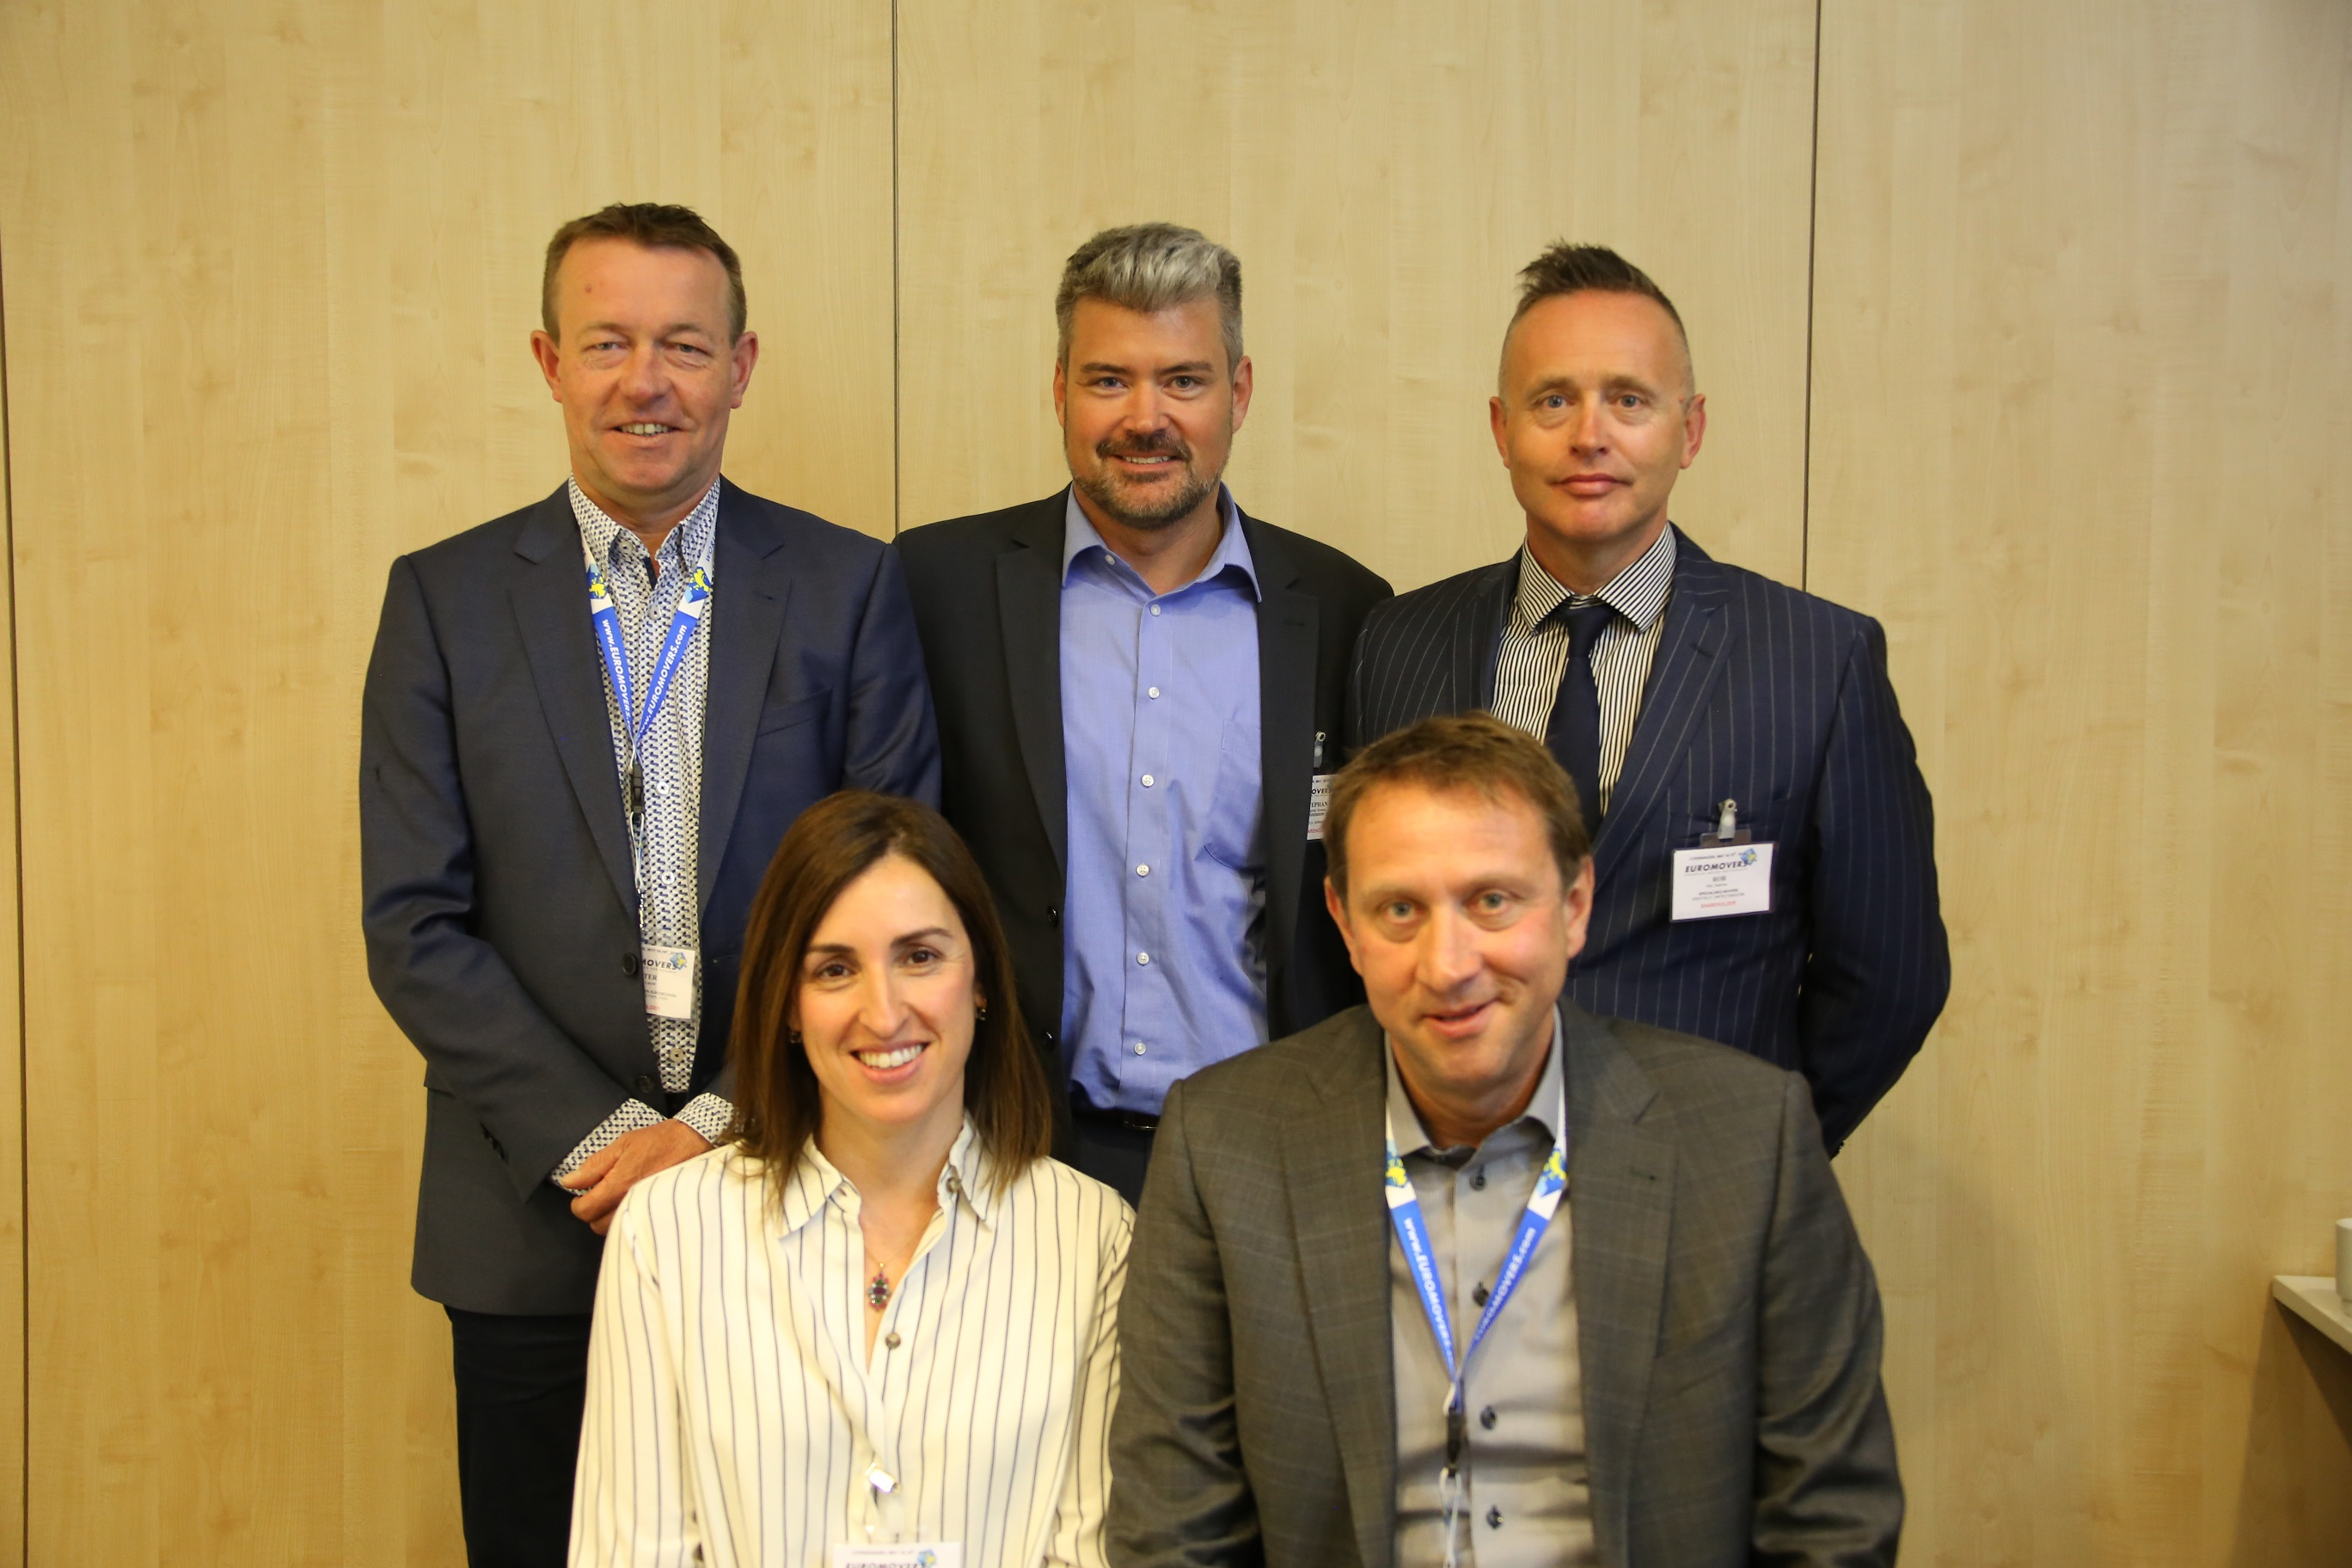 The new EUROMOVERS Board of Directors